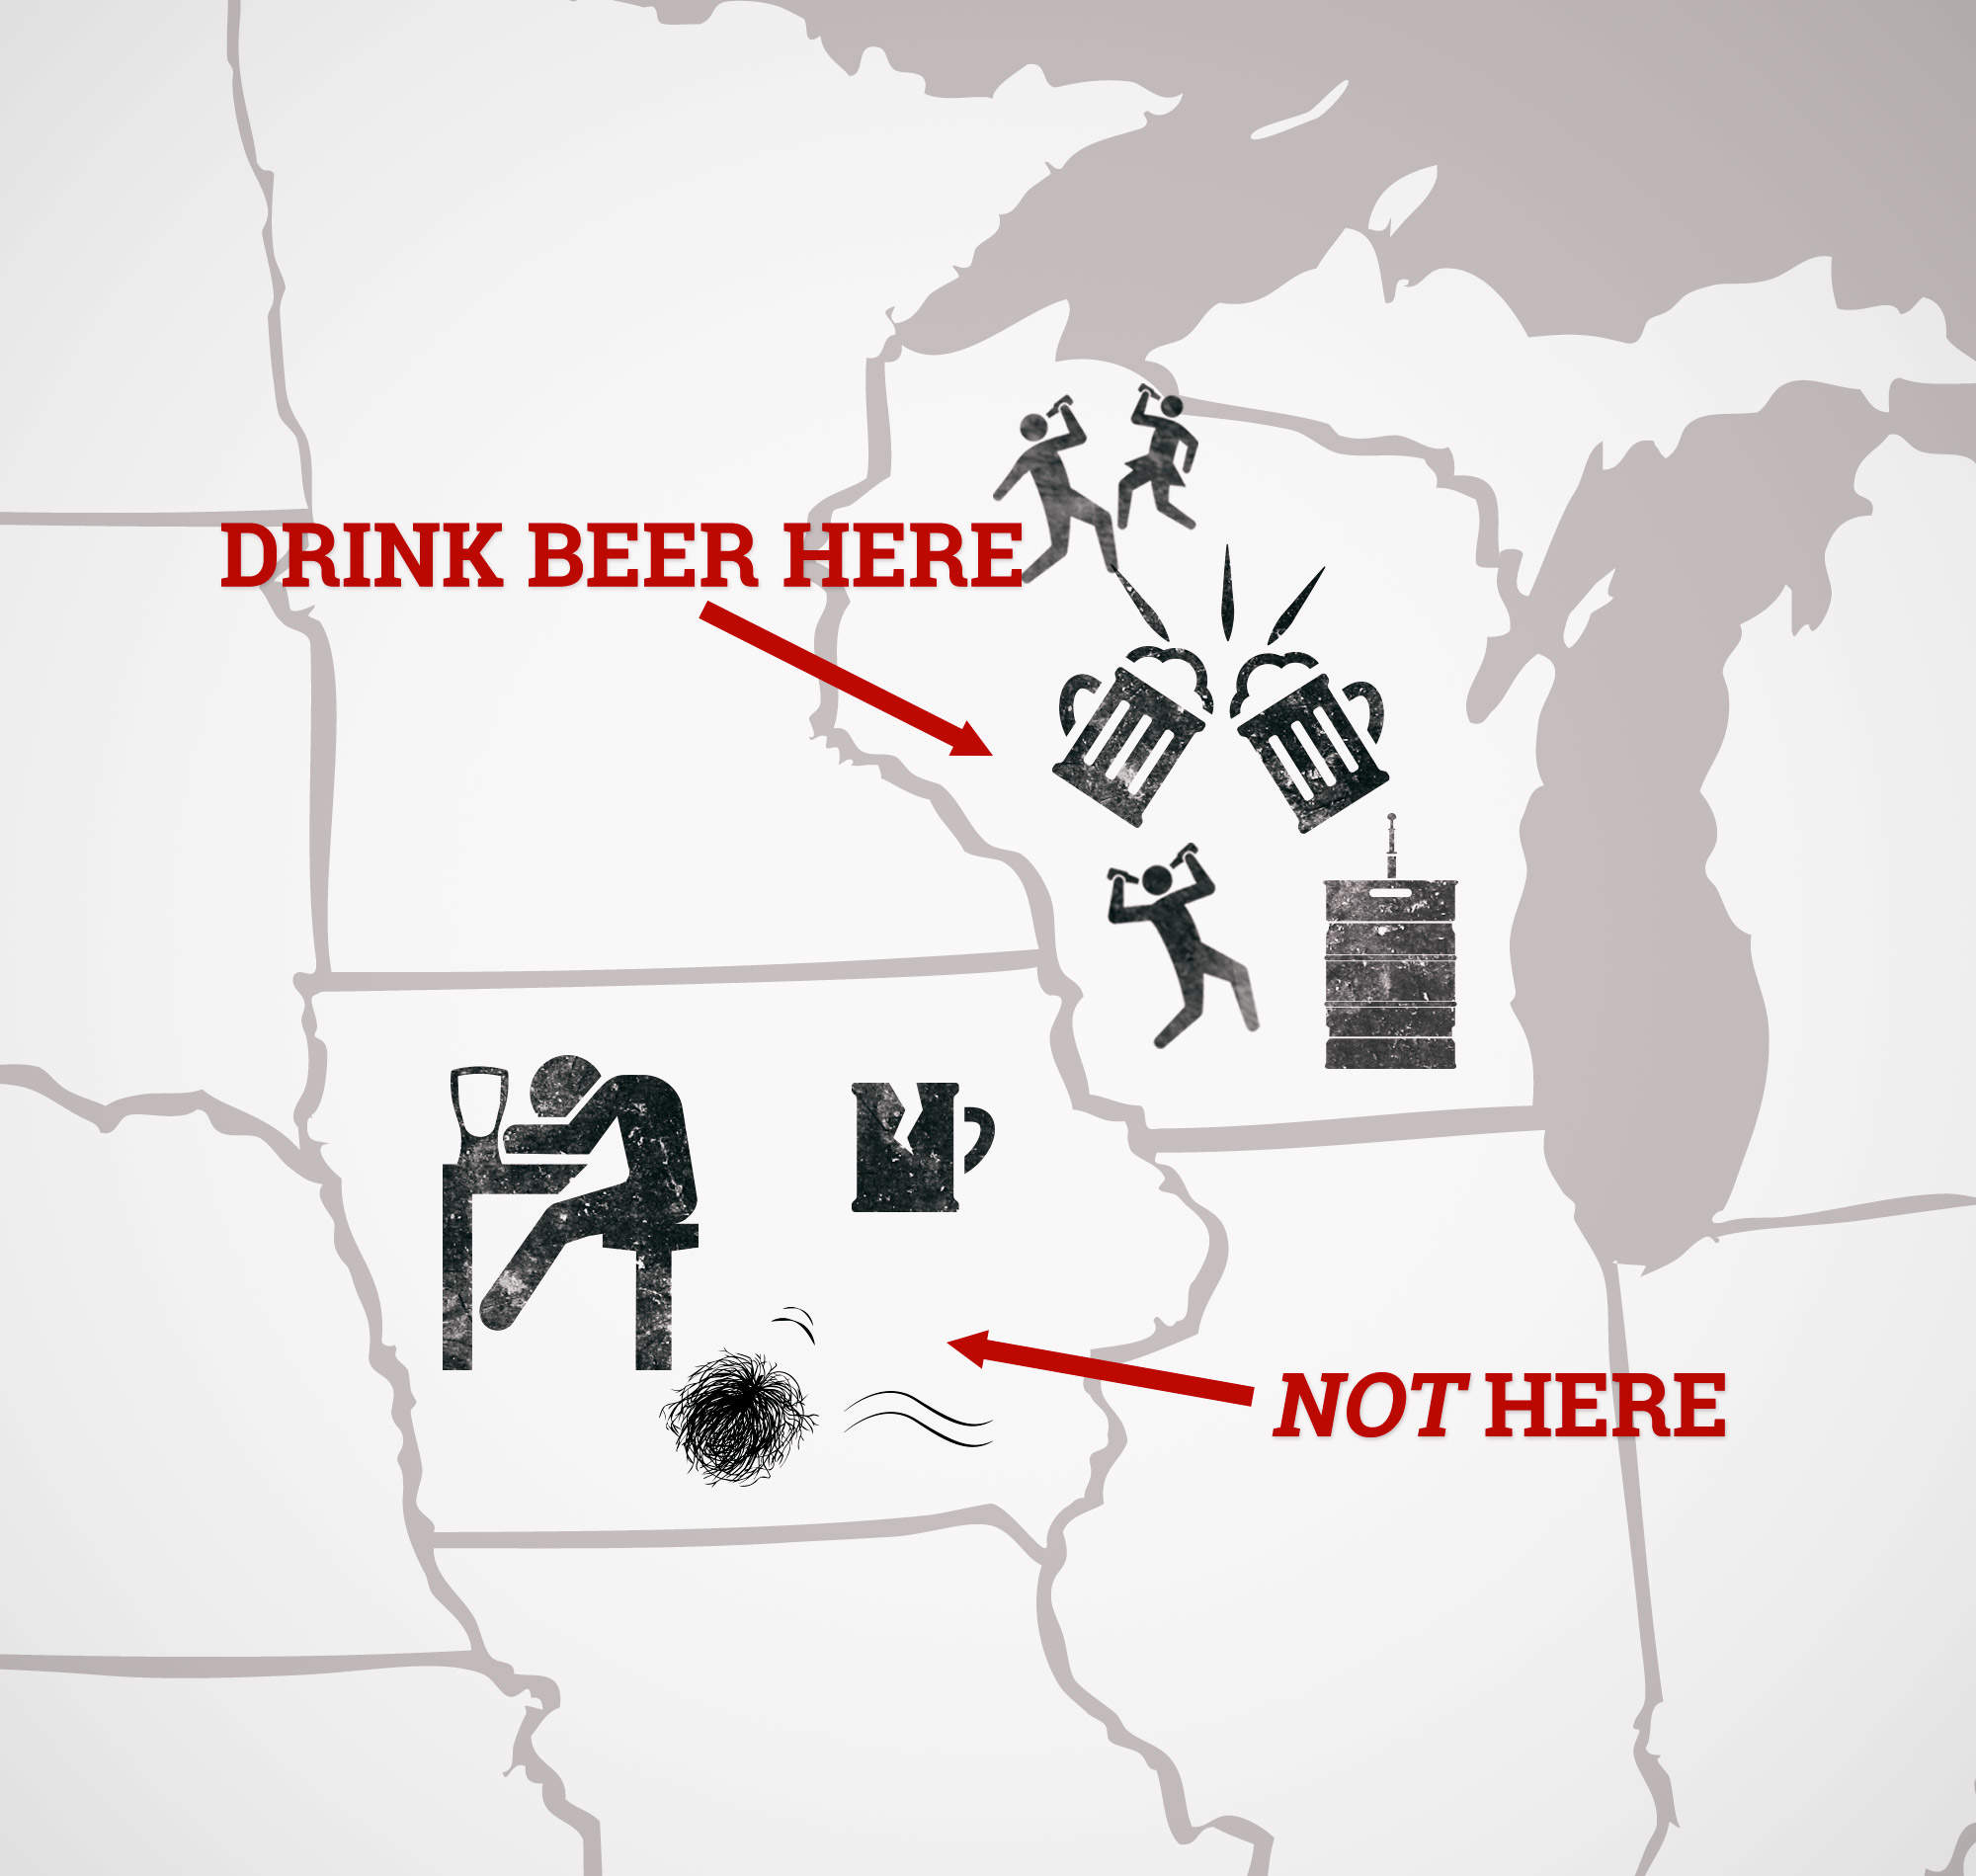 All 50 States, Ranked by Their Beer